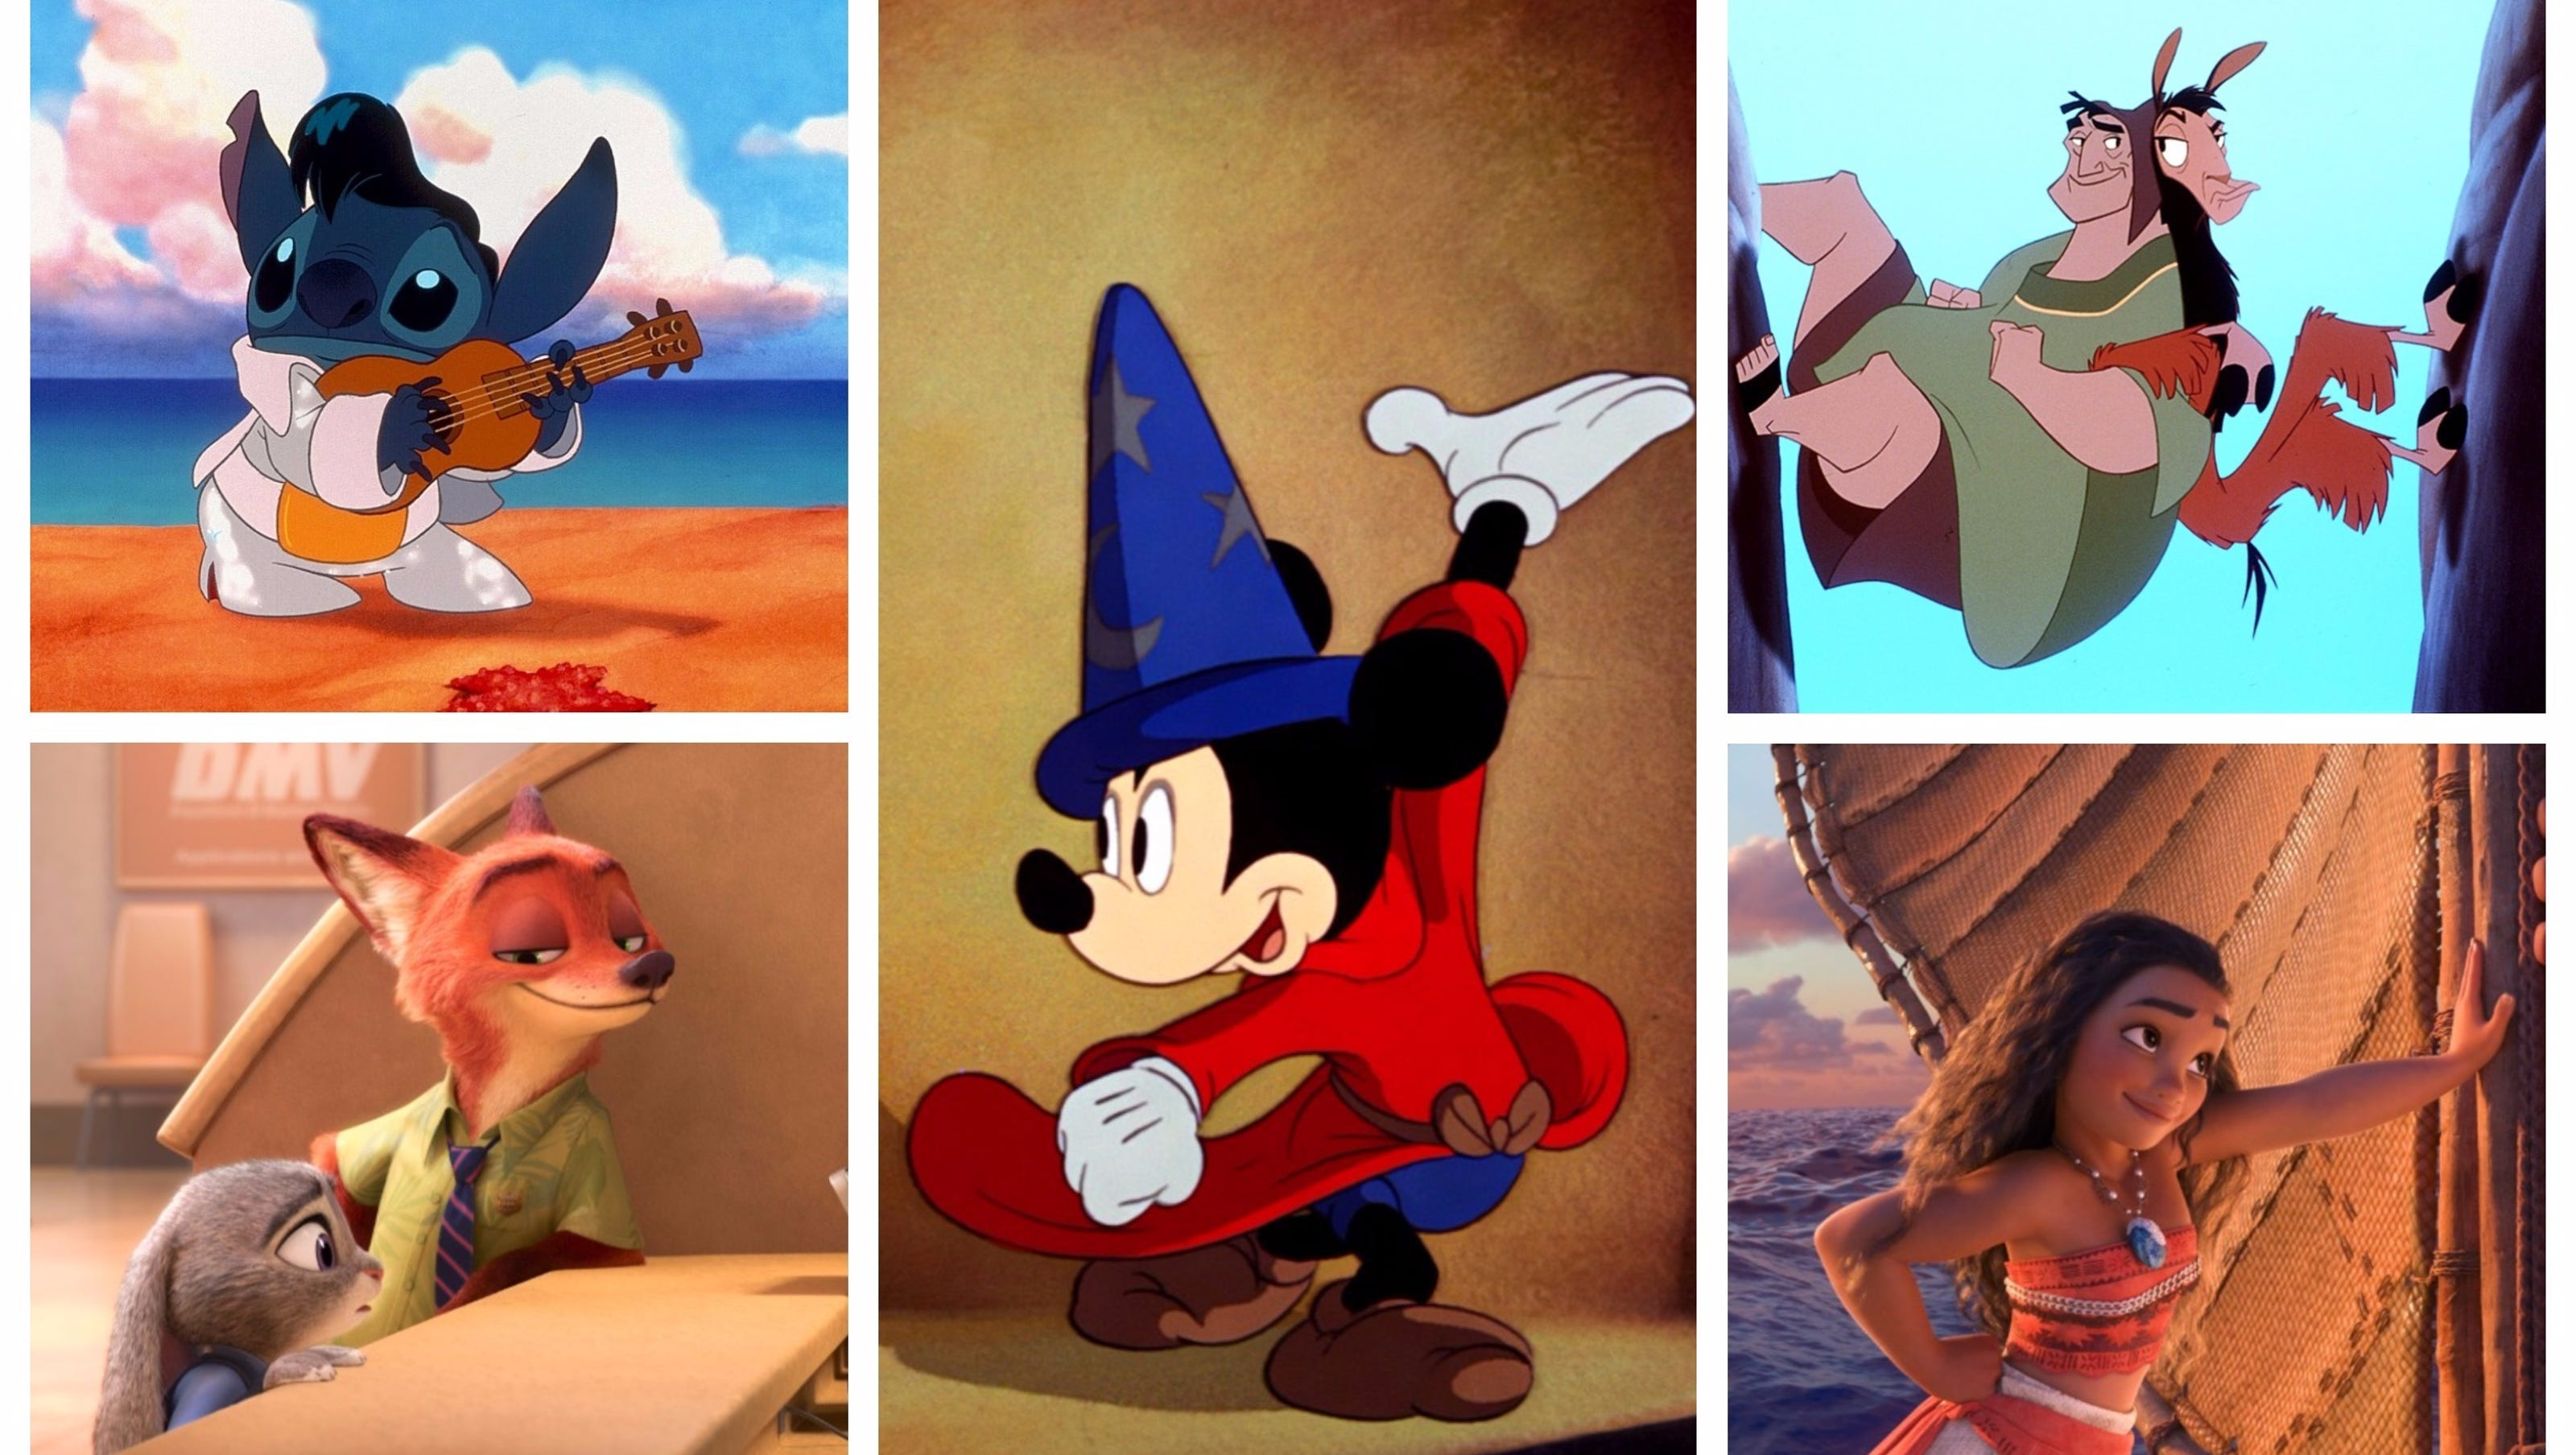 Quick Stream These 10 Disney Movies On Netflix While You Can